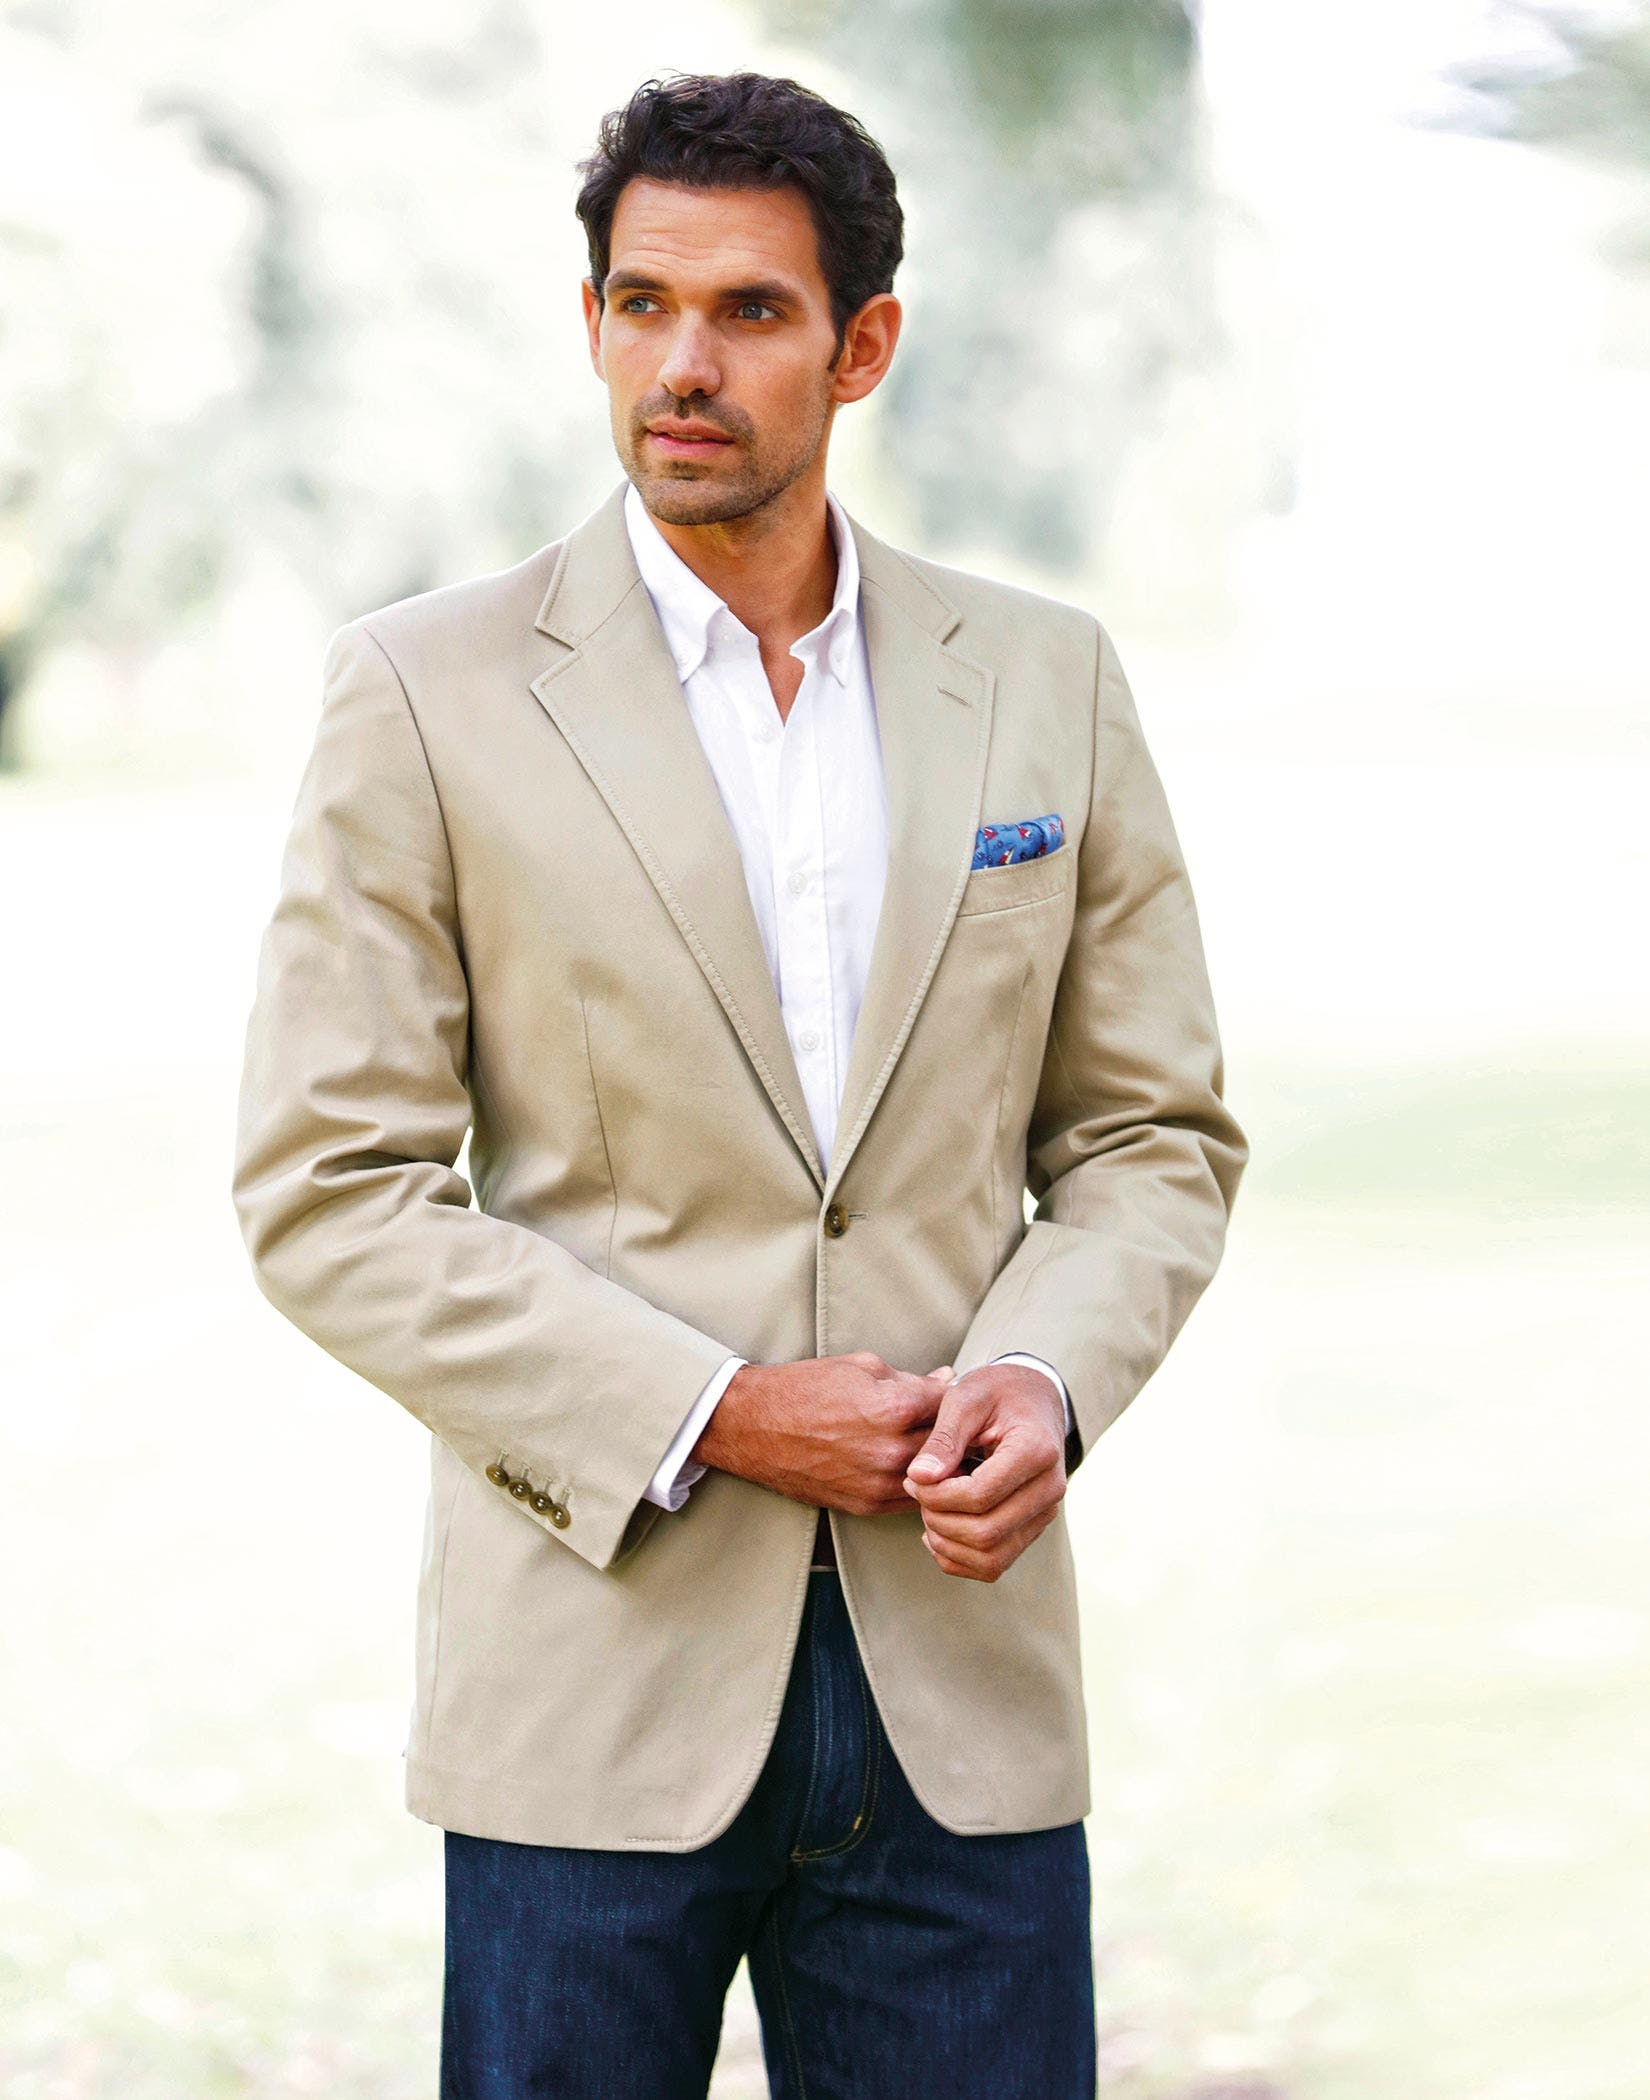 bcaa00d22752 ... going to be suitable for fancier occasions, but also comfortable enough  to wear for long stretches, a cotton twill blazer will fit the bill  perfectly.